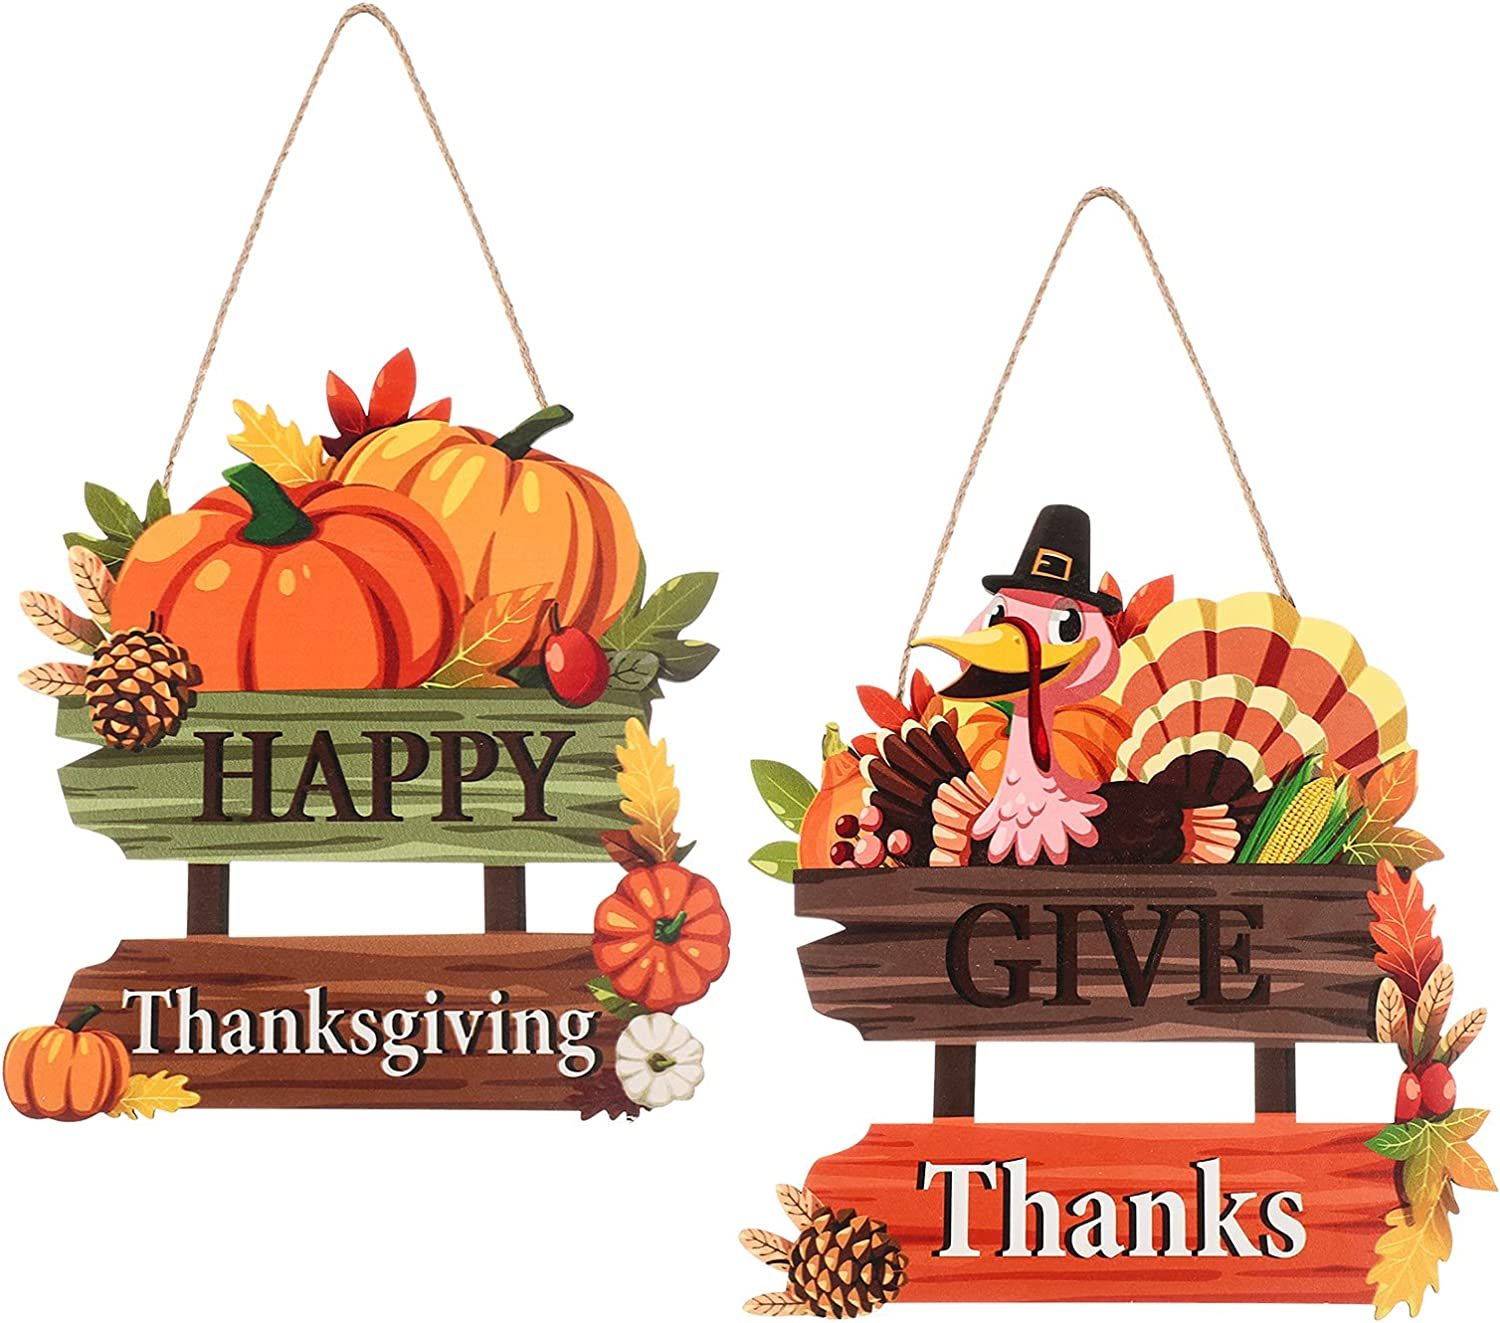 2 Pieces Give Thanks Wood Sign and Happy Thanksgiving Door Sign Thanksgiving Pumpkin Front Door Hanger Turkey Wooden Door Decor for Thanksgiving Party Fall Home Autumn Holiday Door Wall Decoration